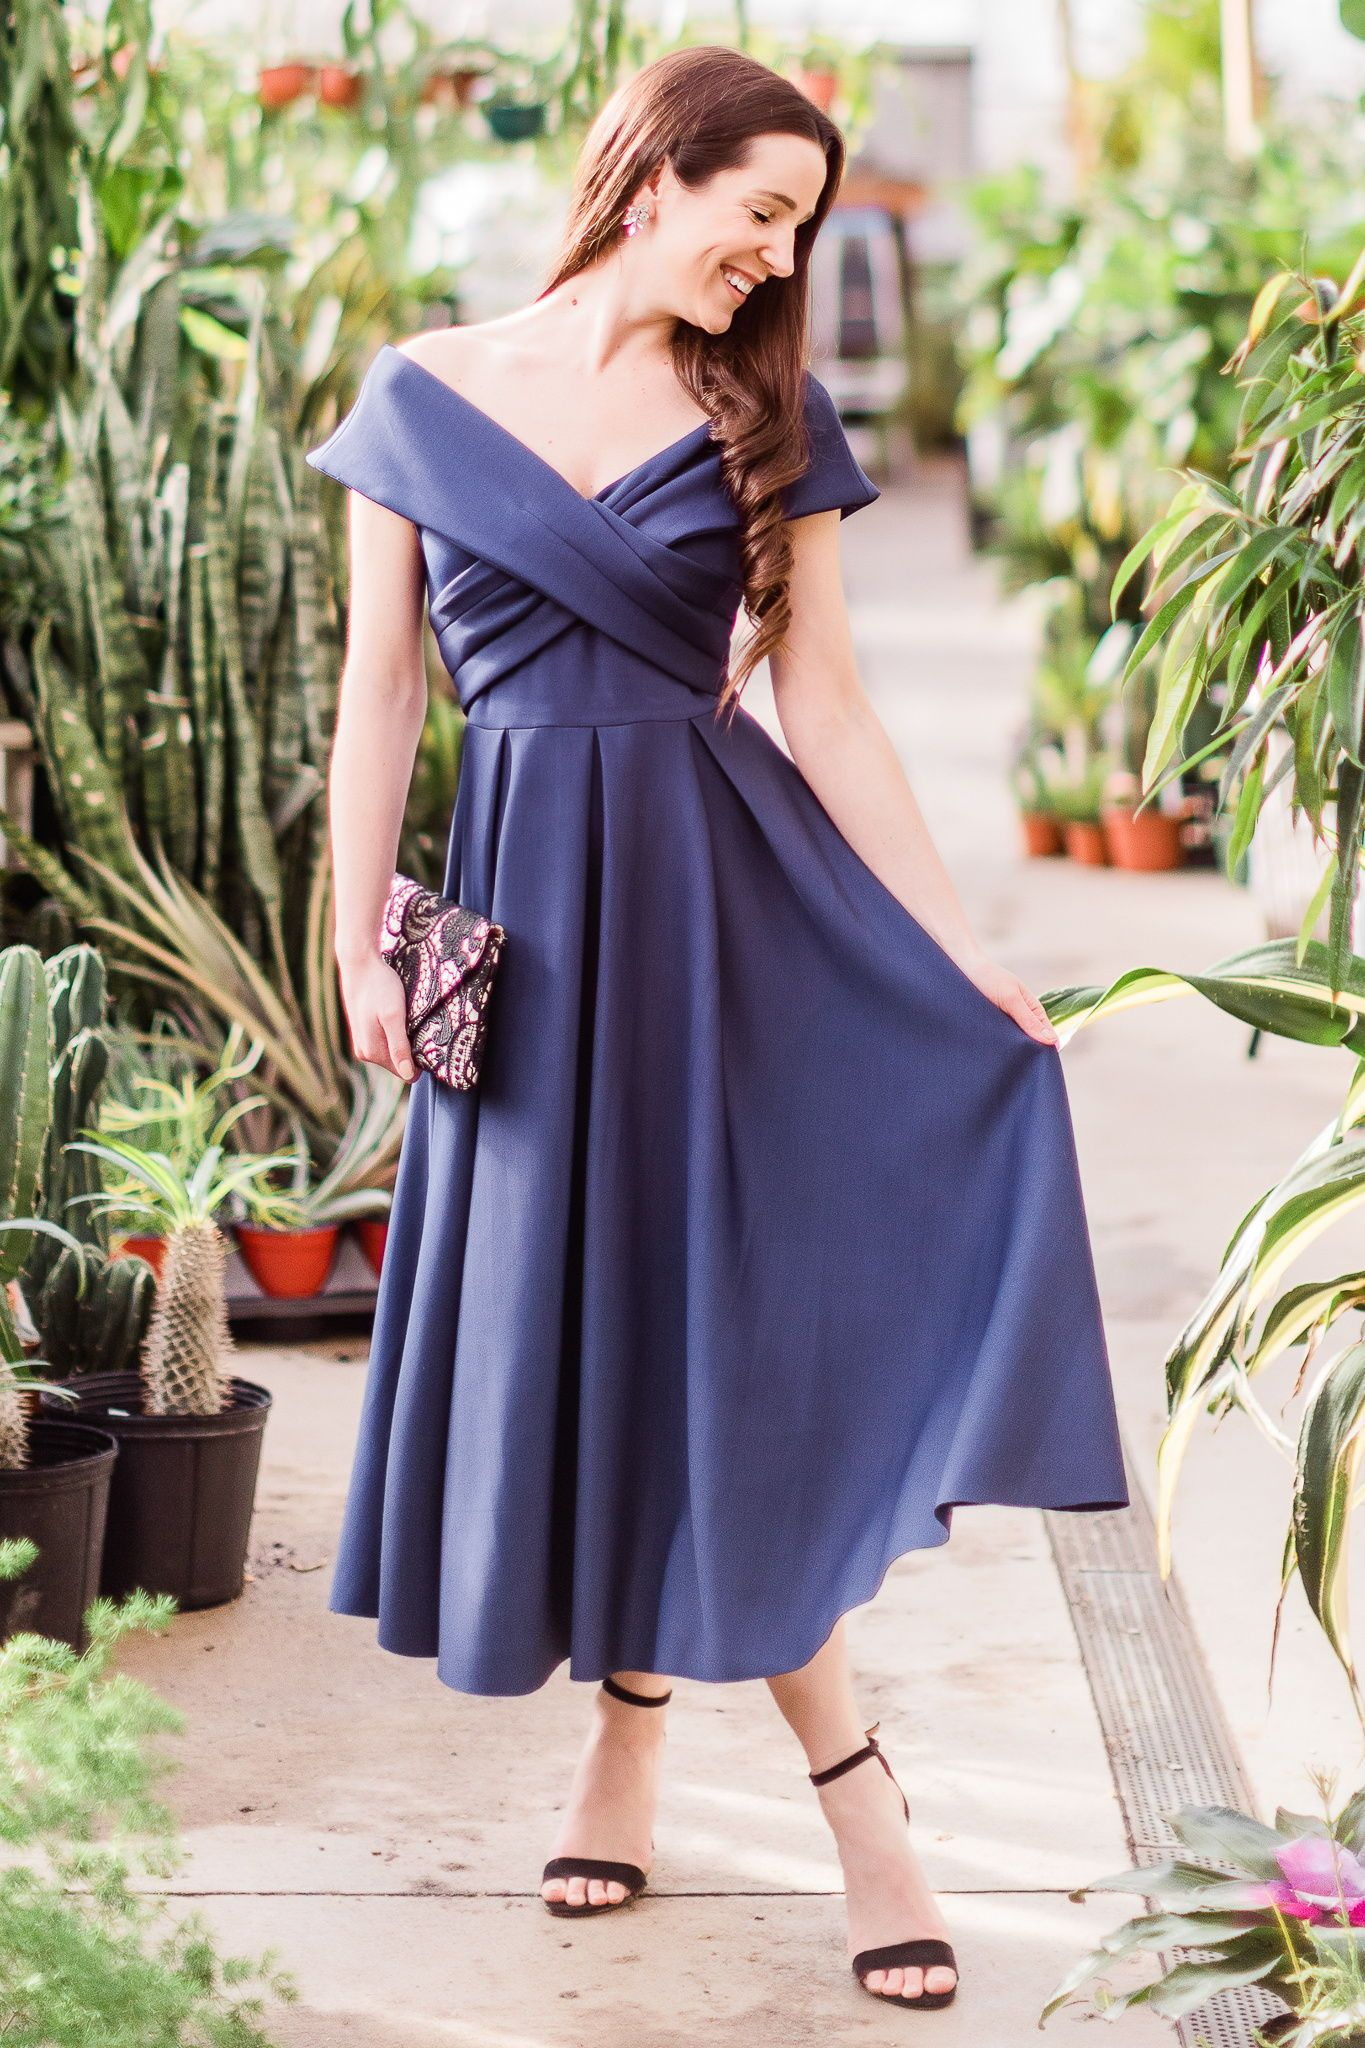 Style Guide What To Wear To A Garden Party Wedding Garden Party Outfit Wedding Guest Dress Styles Off Shoulder Fashion [ 2048 x 1365 Pixel ]